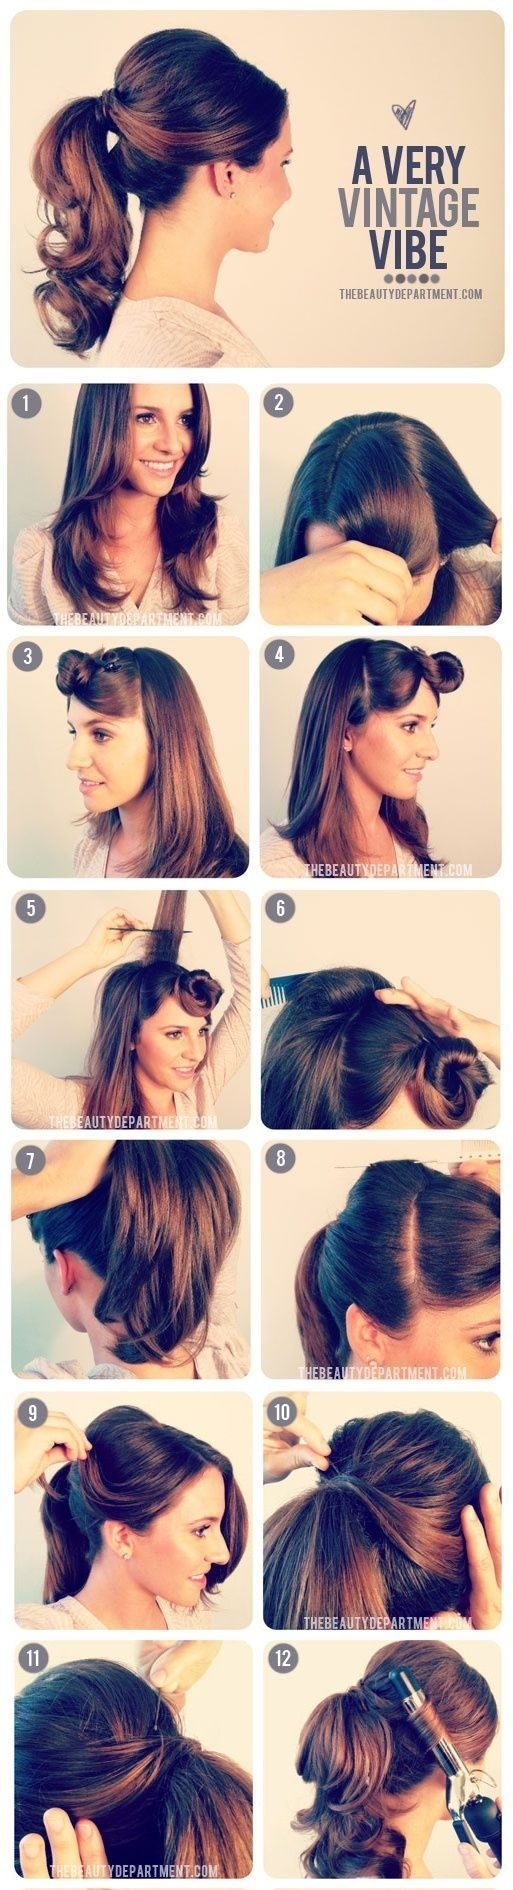 Burlesque Updo Hairstyles For Long Hair